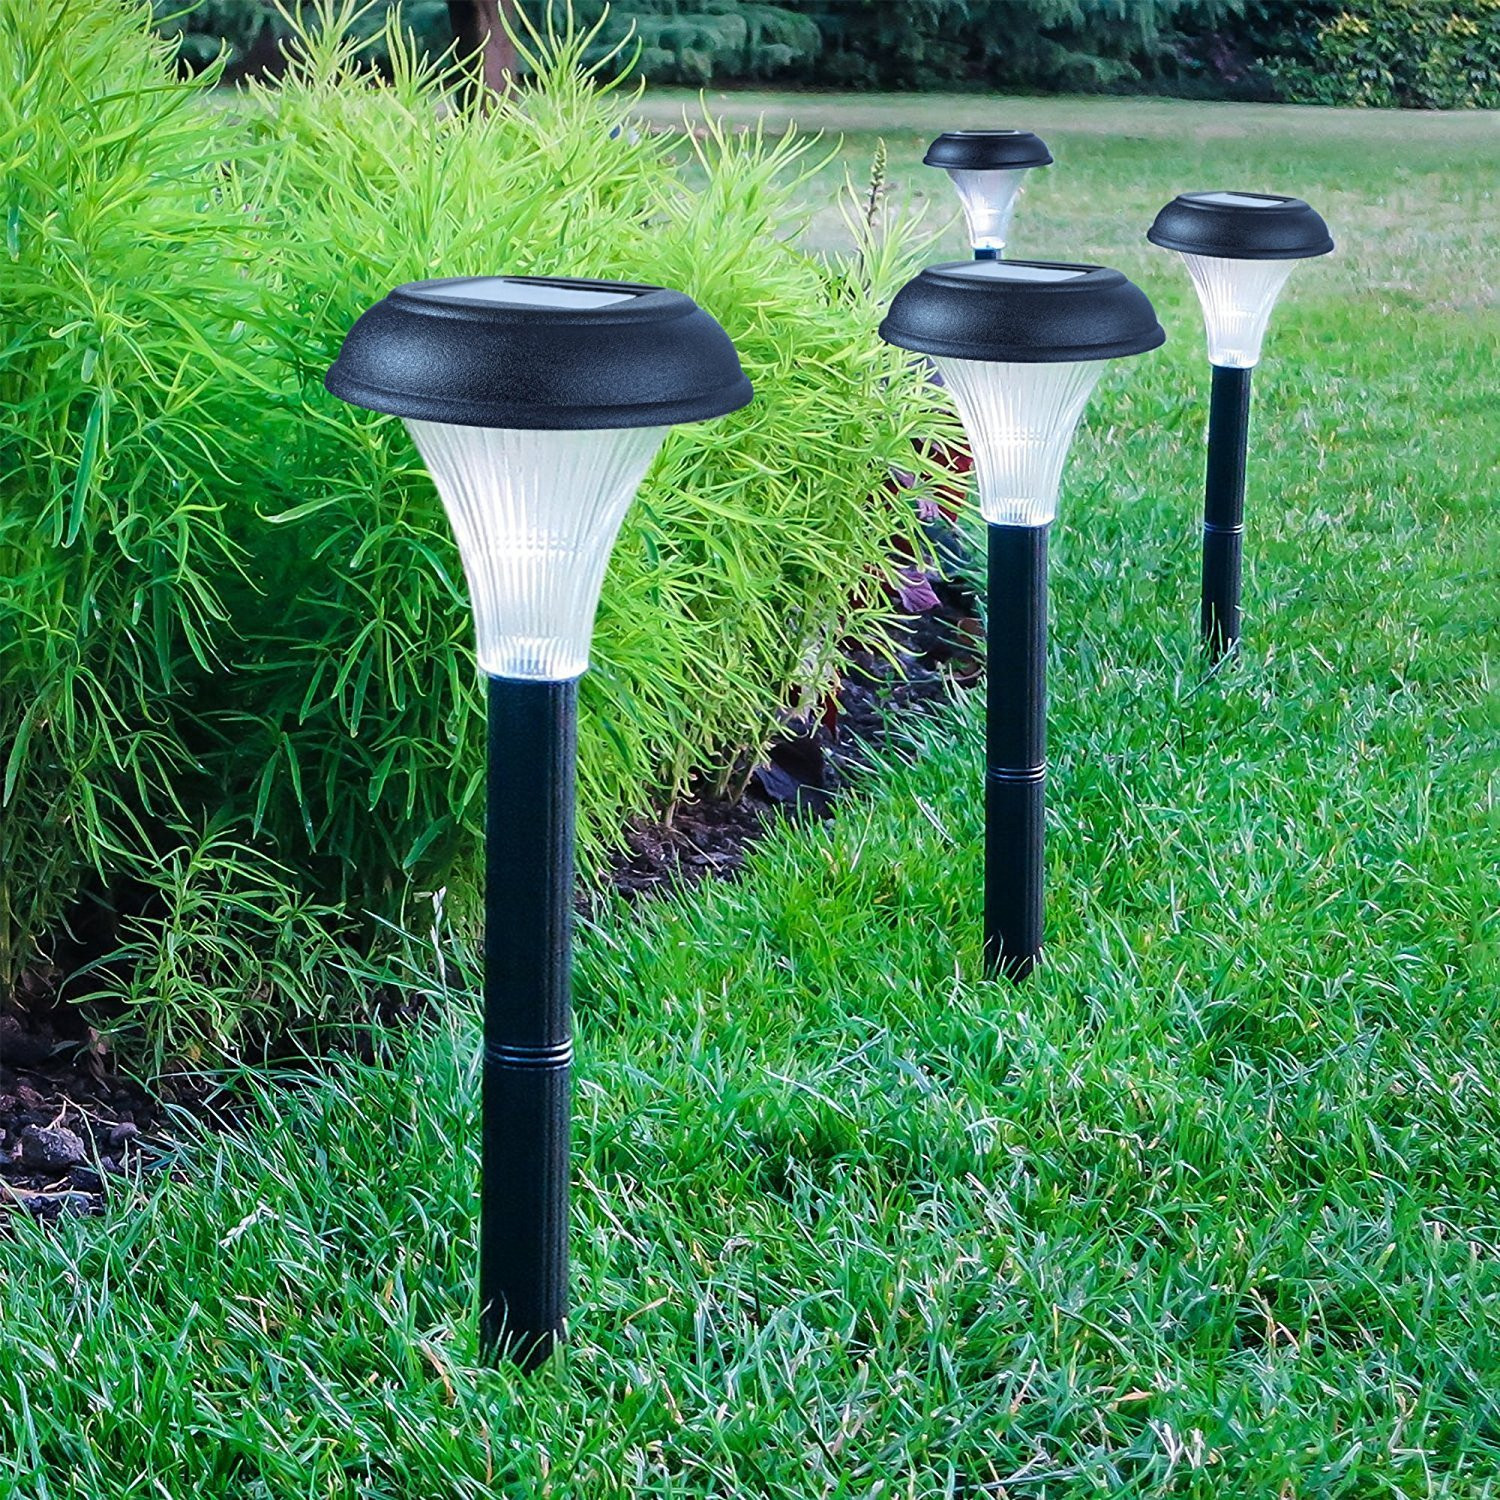 Best ideas about Solar Powered Patio Lighting . Save or Pin The 5 Best Solar LED Garden & Landscape Lights Reviewed Now.